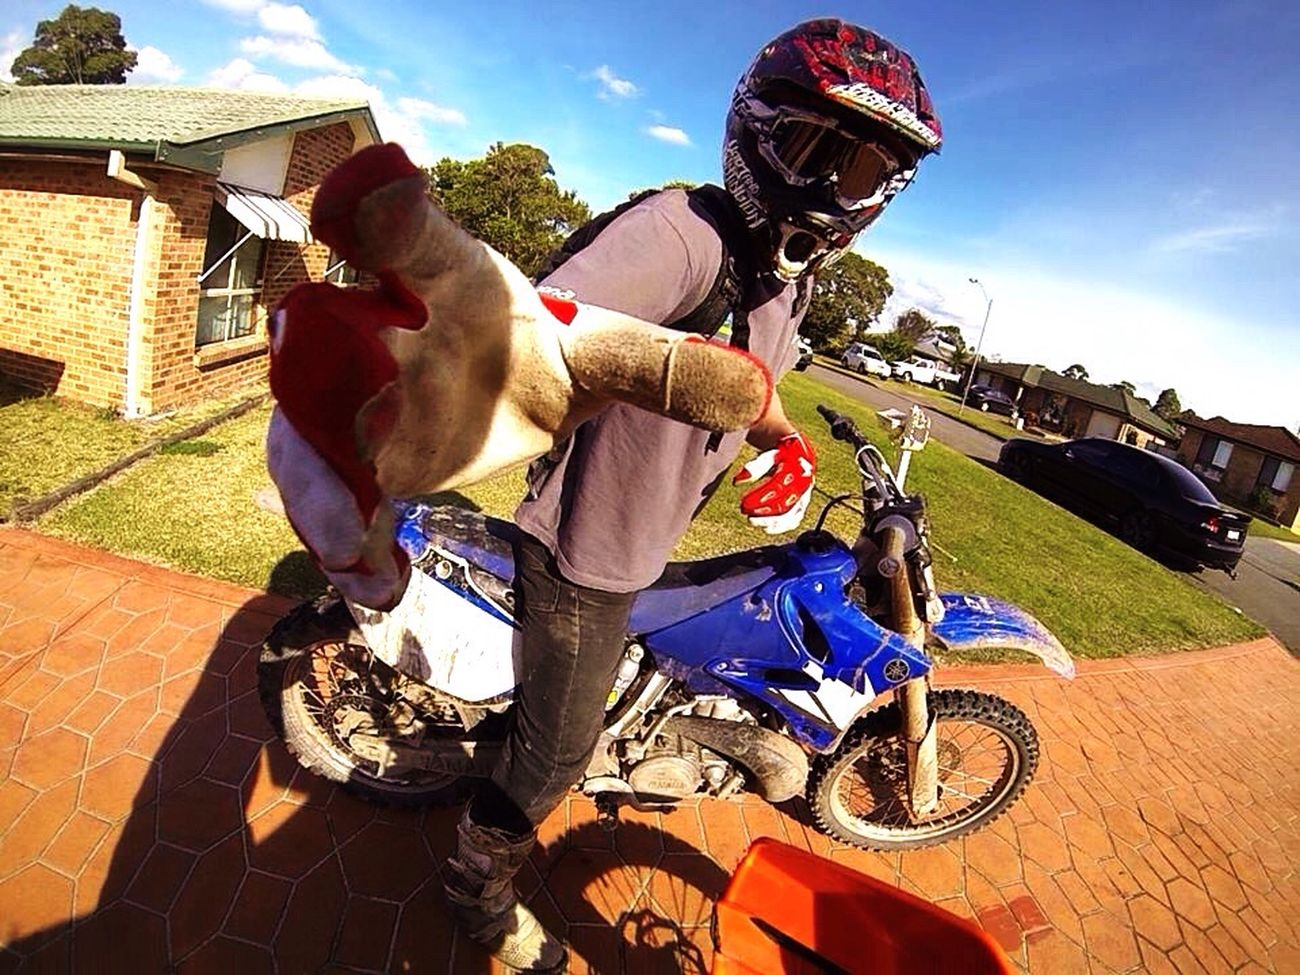 Sound Of Life Brapp 💥💥 Dirt Bike Mates Soaking Up The Sun Gods Gift